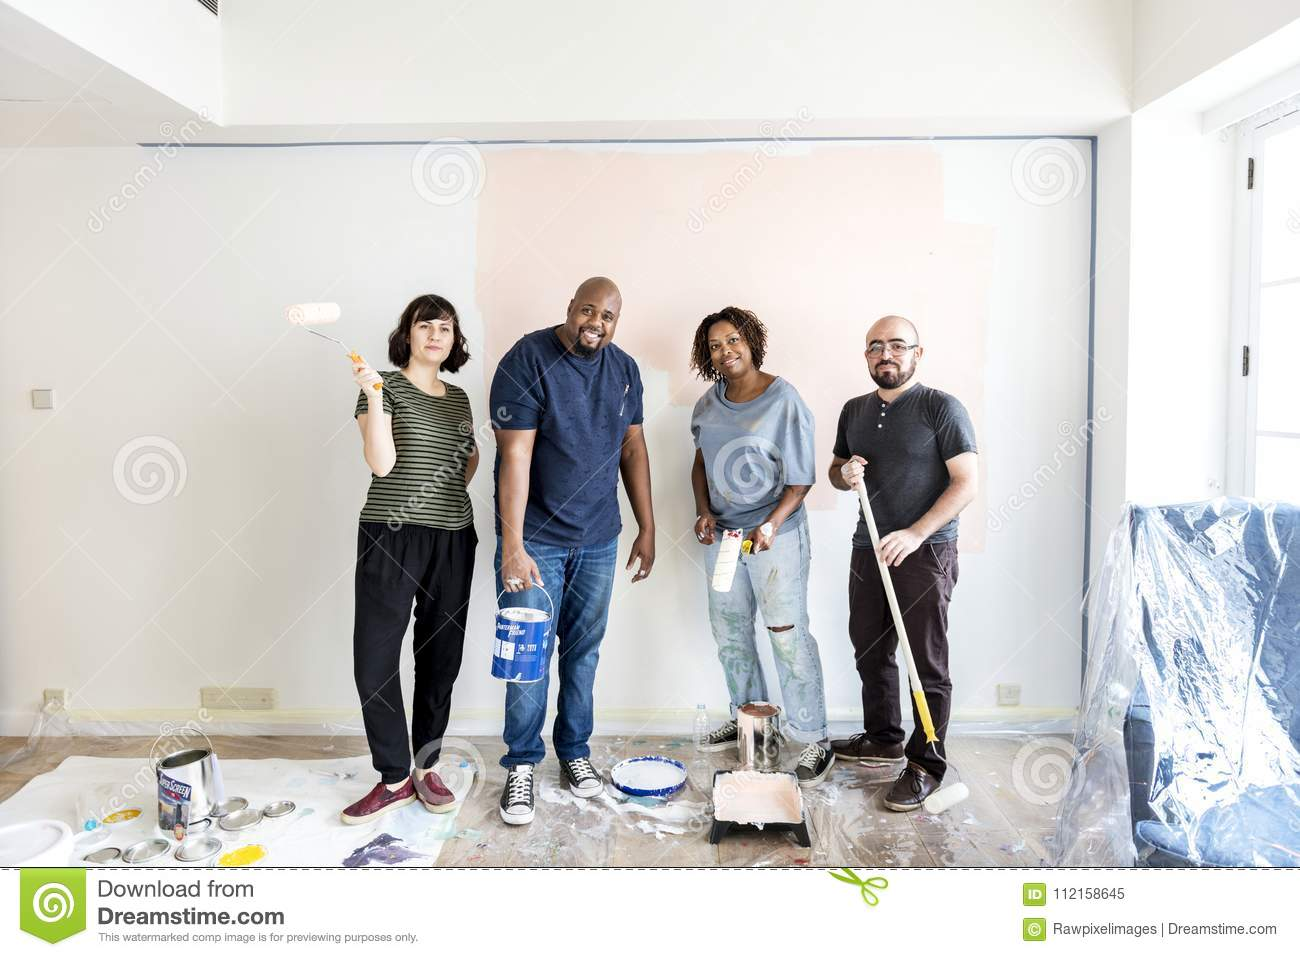 People renovating the house together